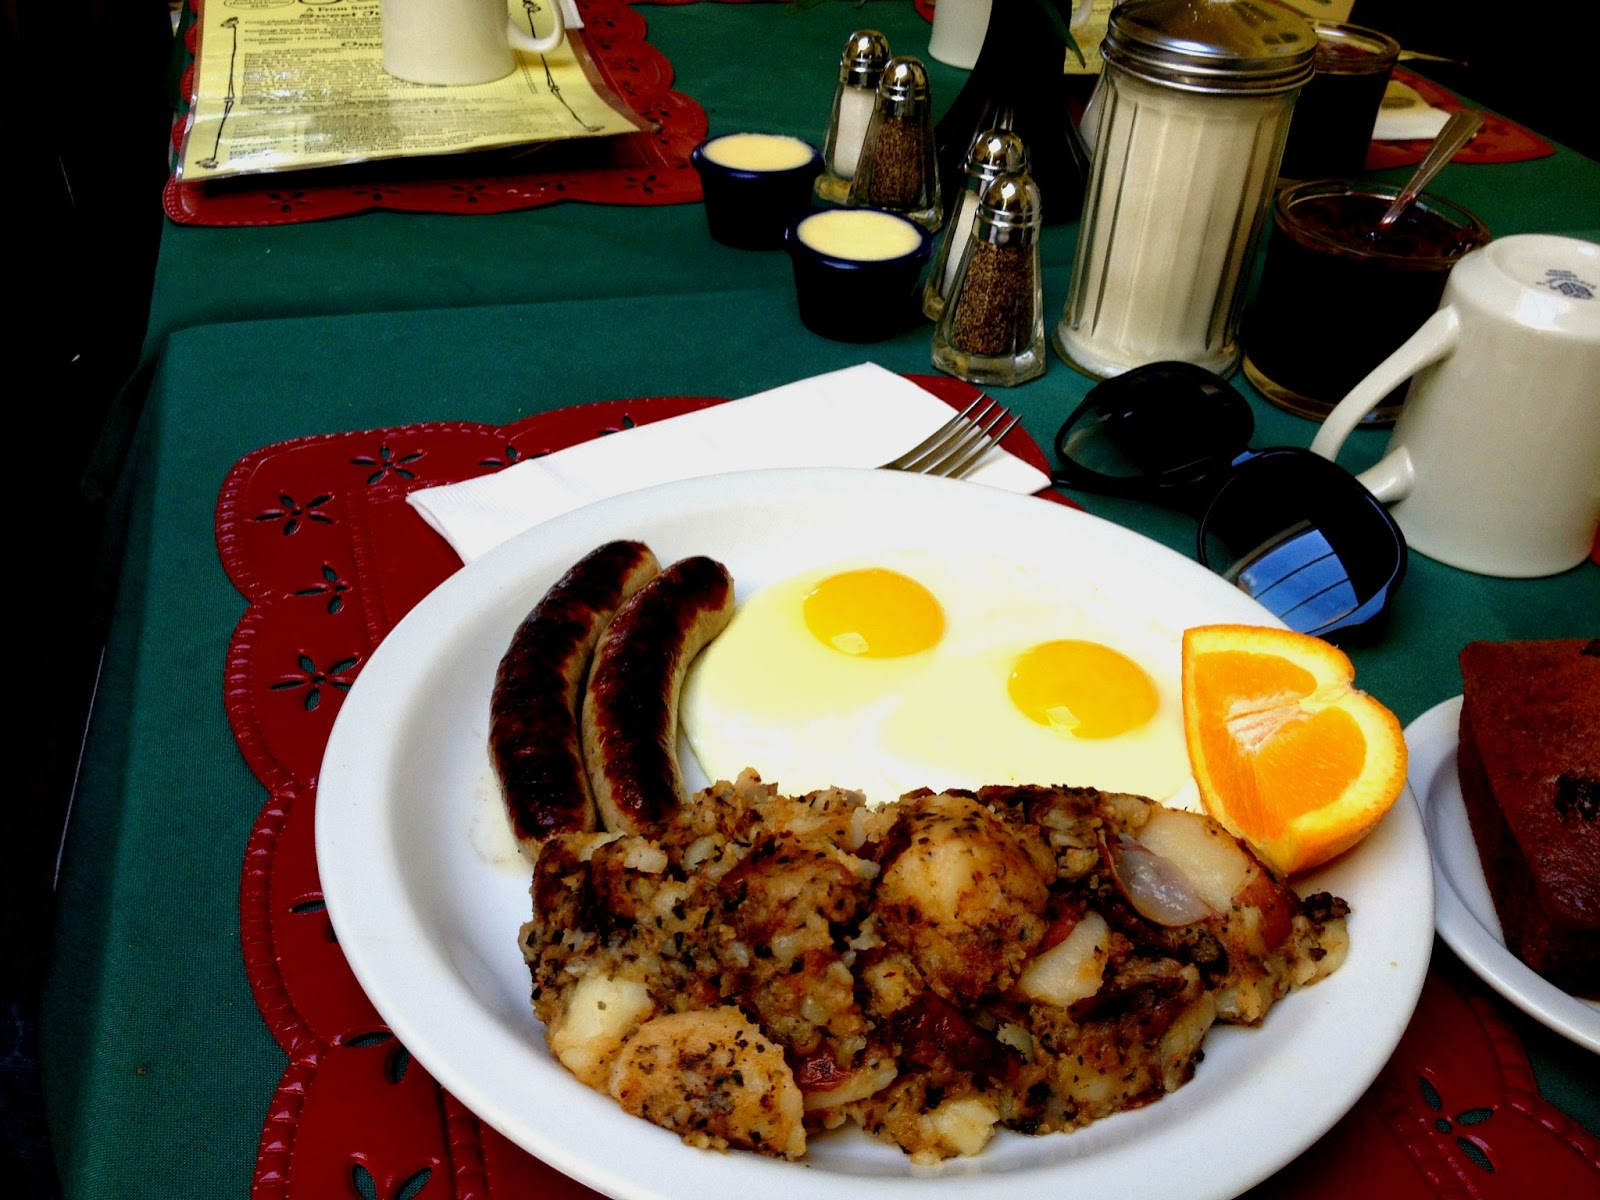 Sunny side up eggs, potatoes, sausages